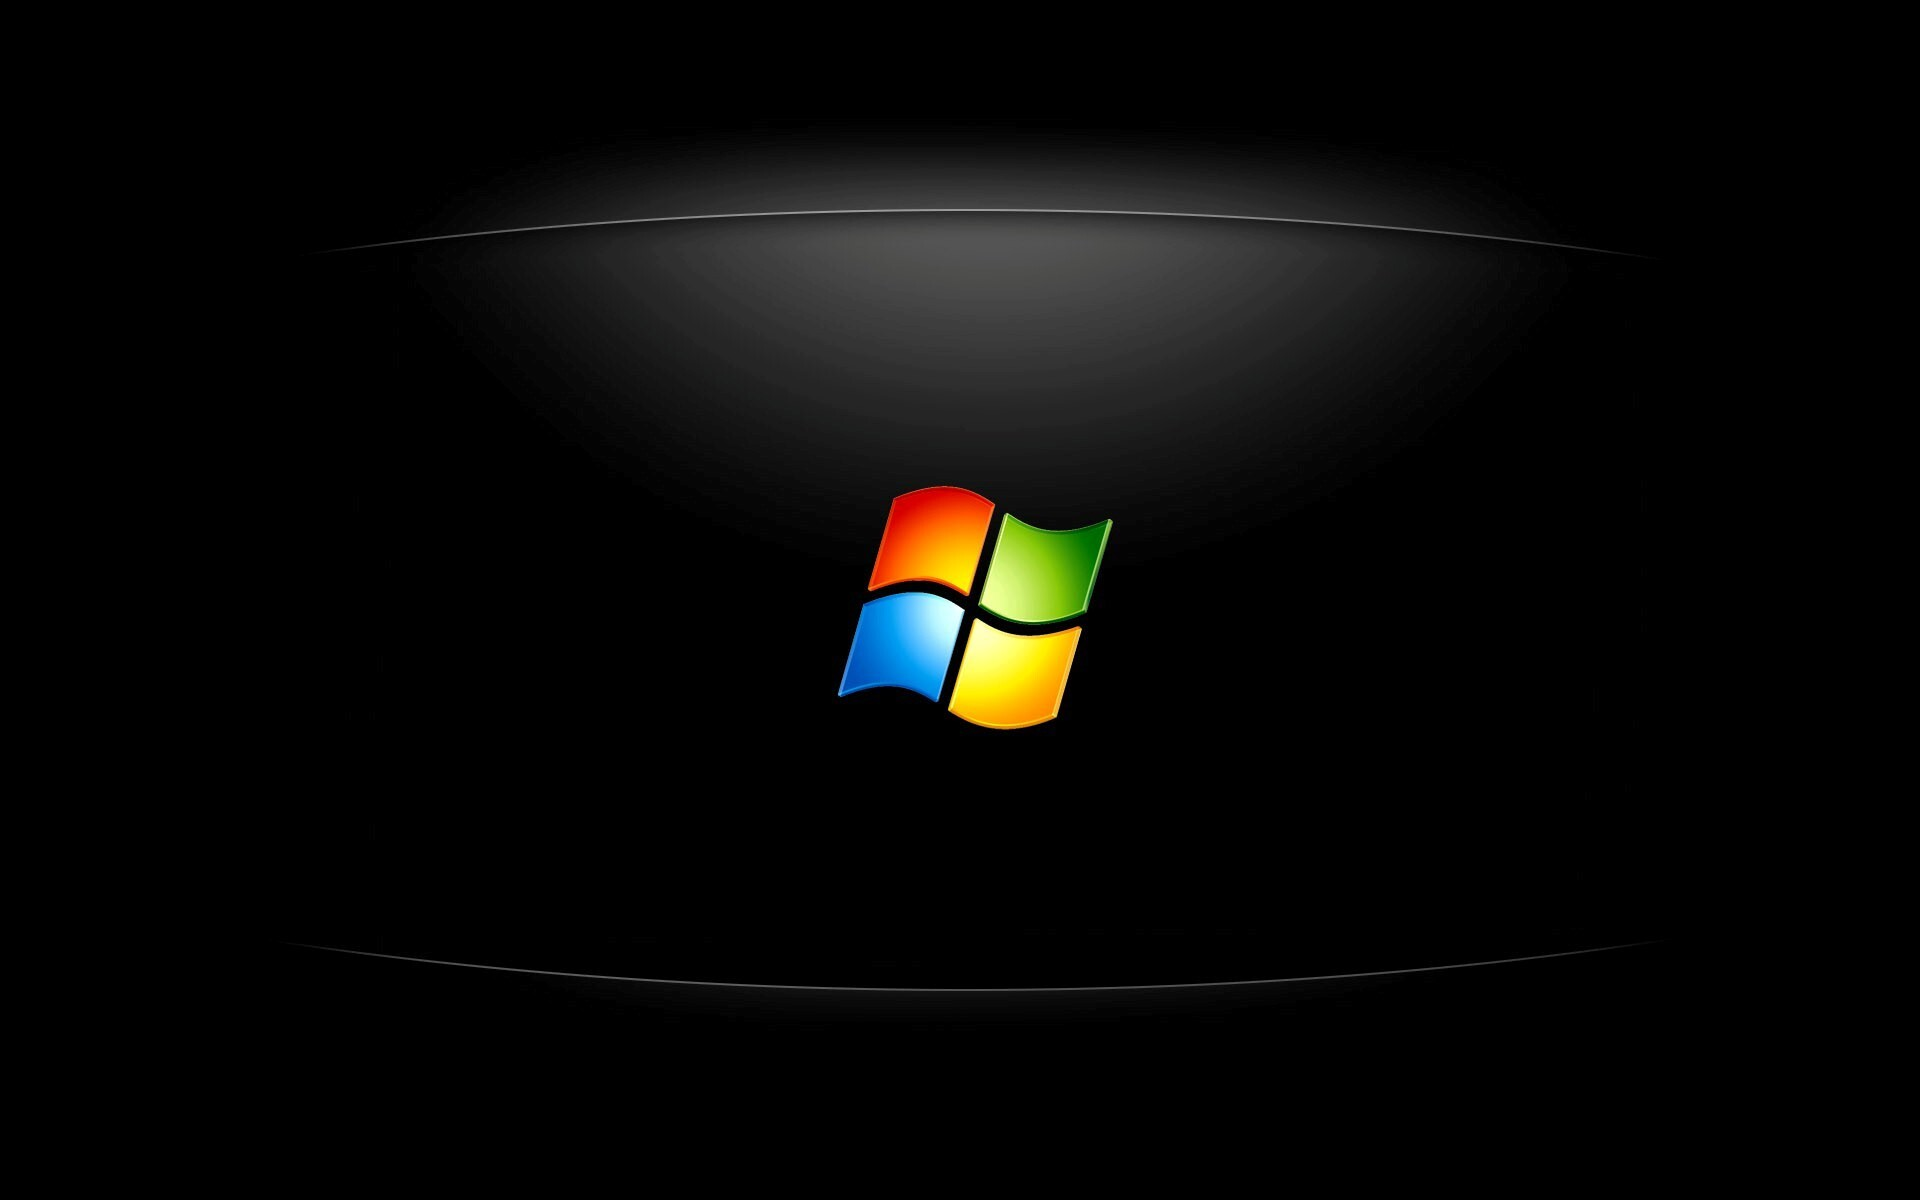 windows logo in black background hd wallpapers